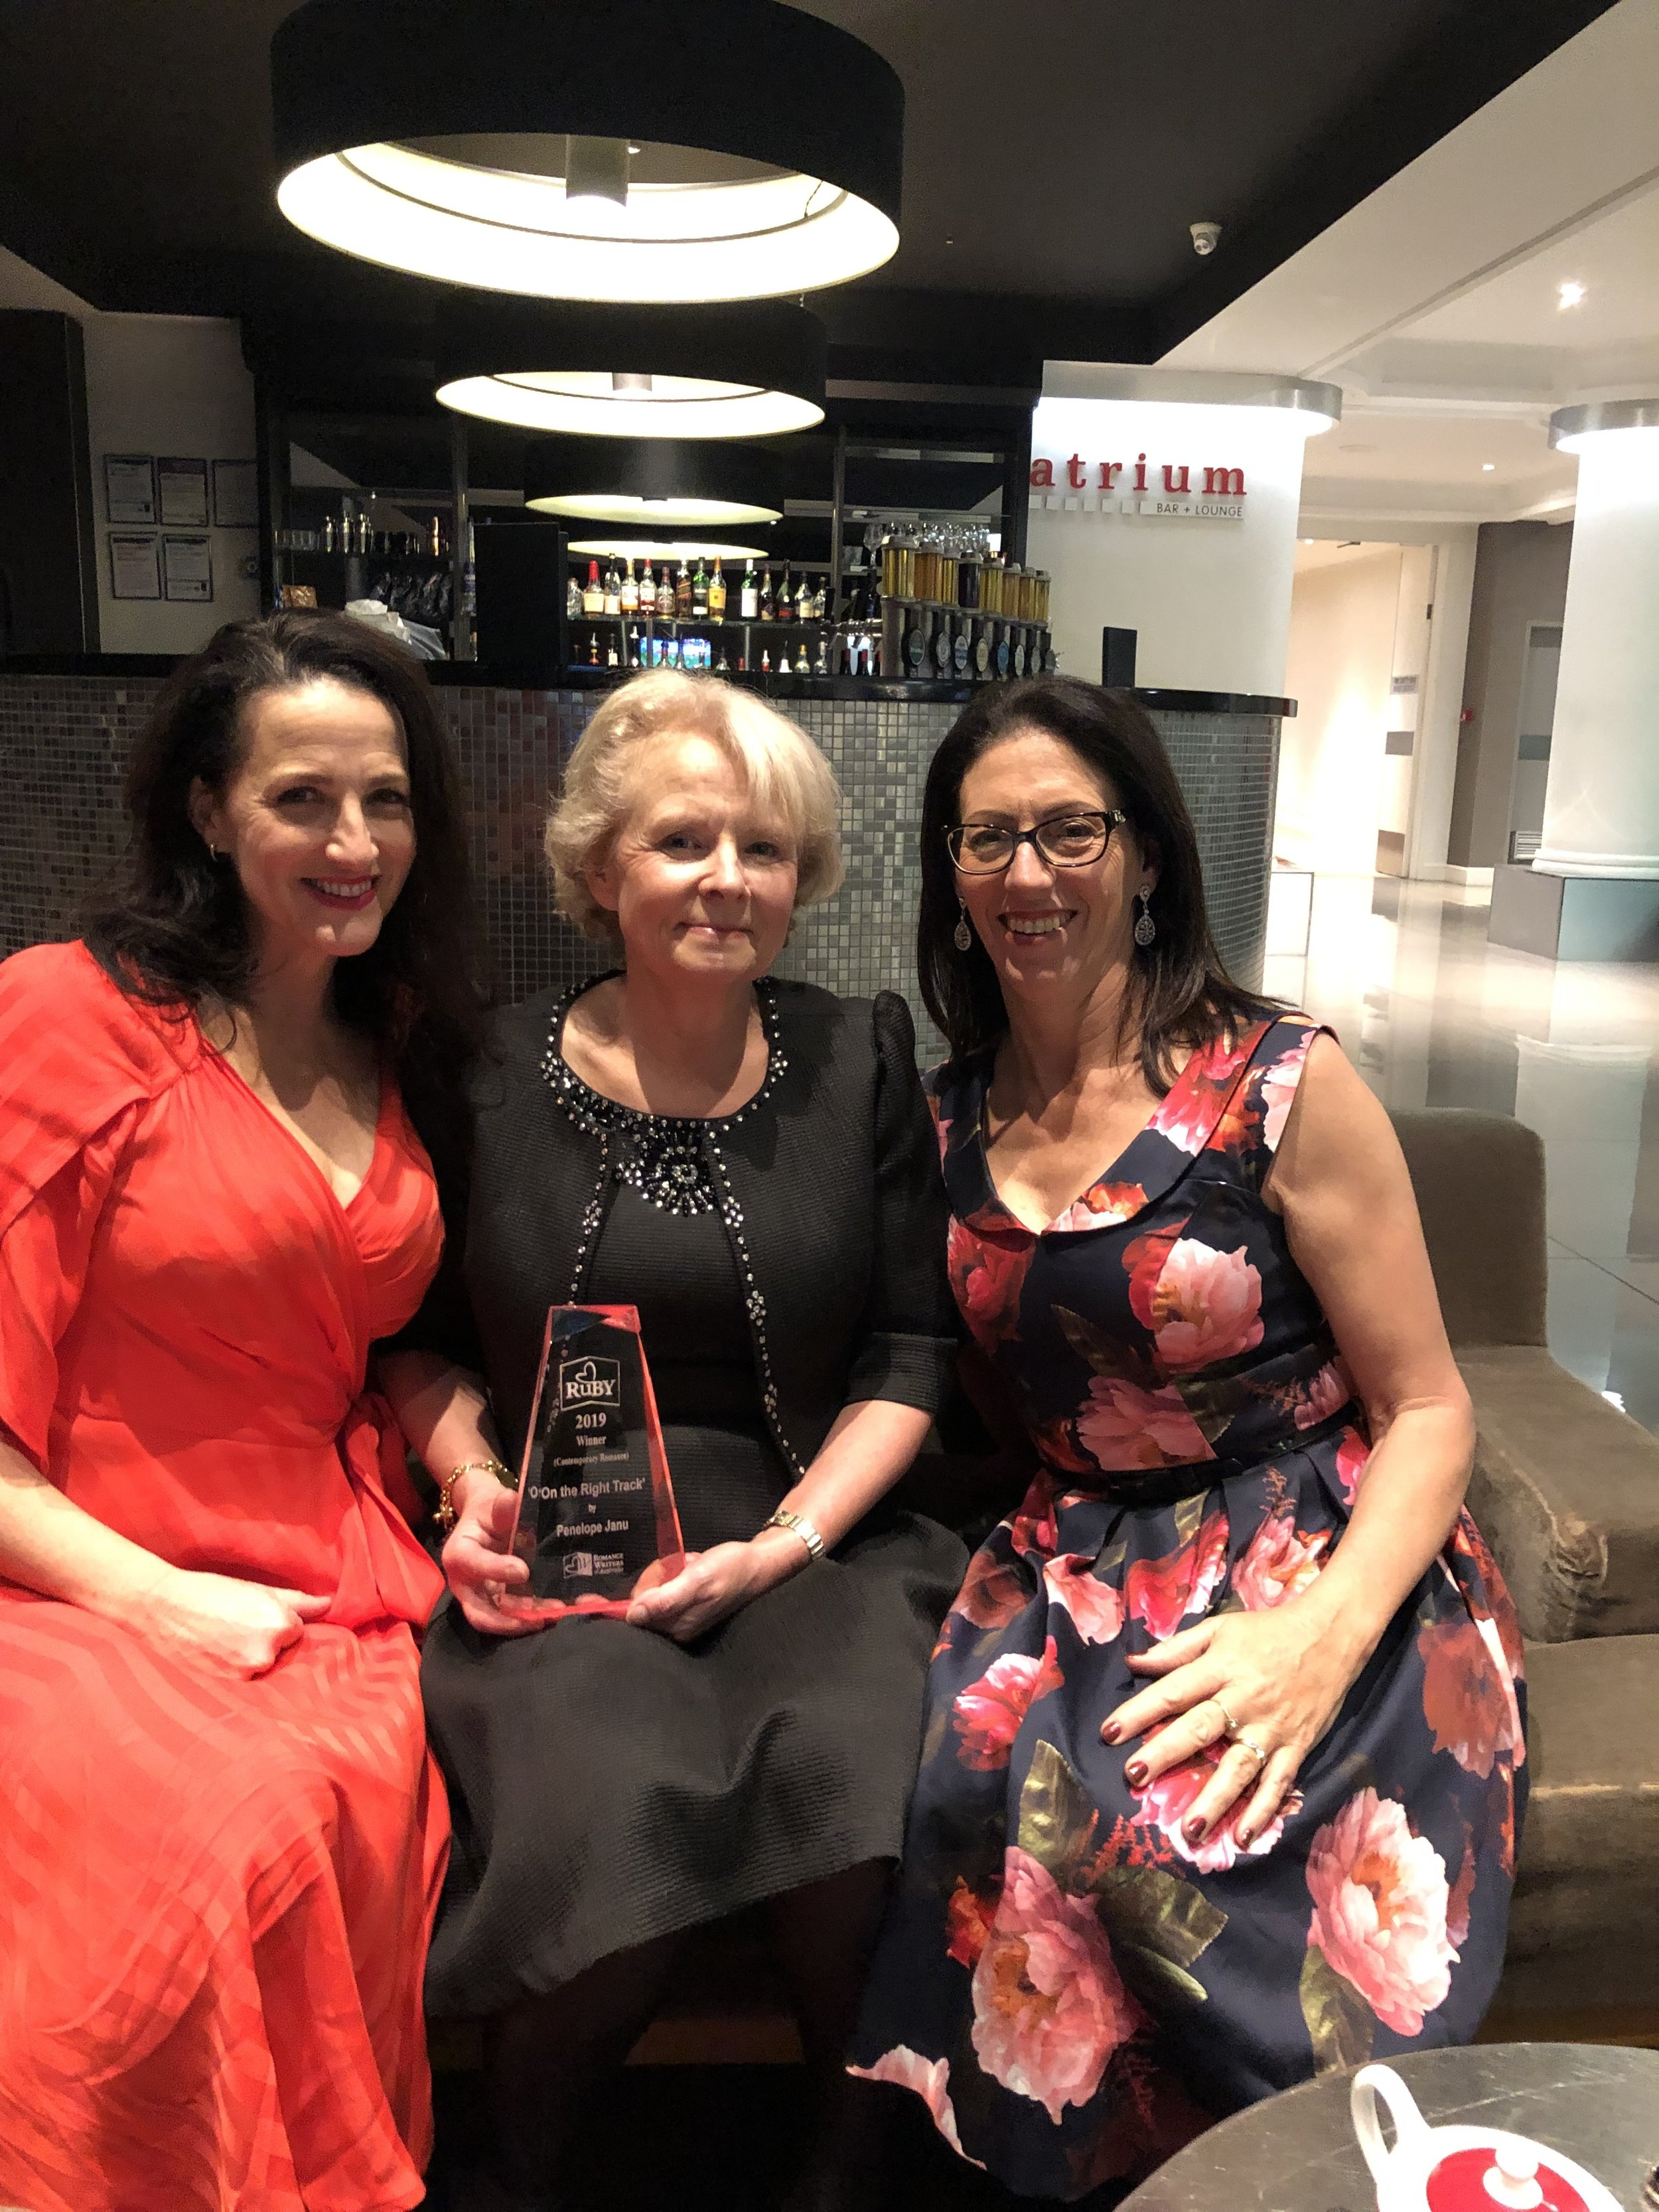 Celebrations with fellow authors Pamela Cook and Rae Cairns